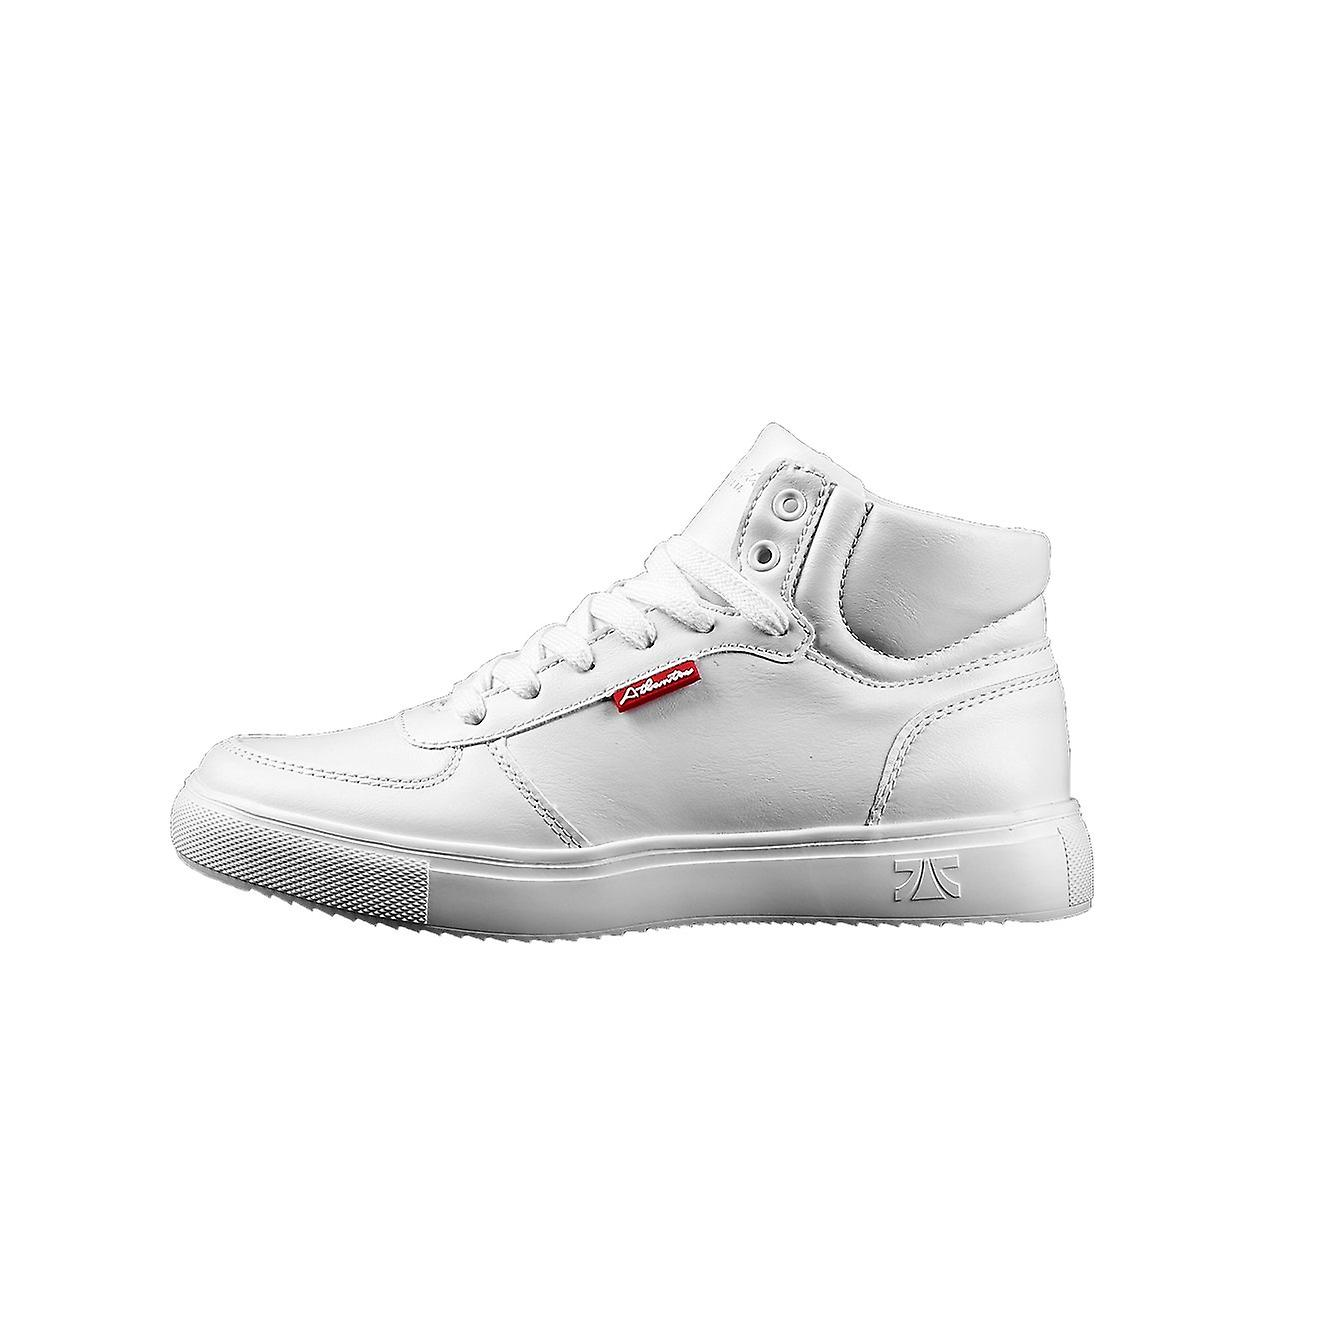 Human fly men's sneakers white